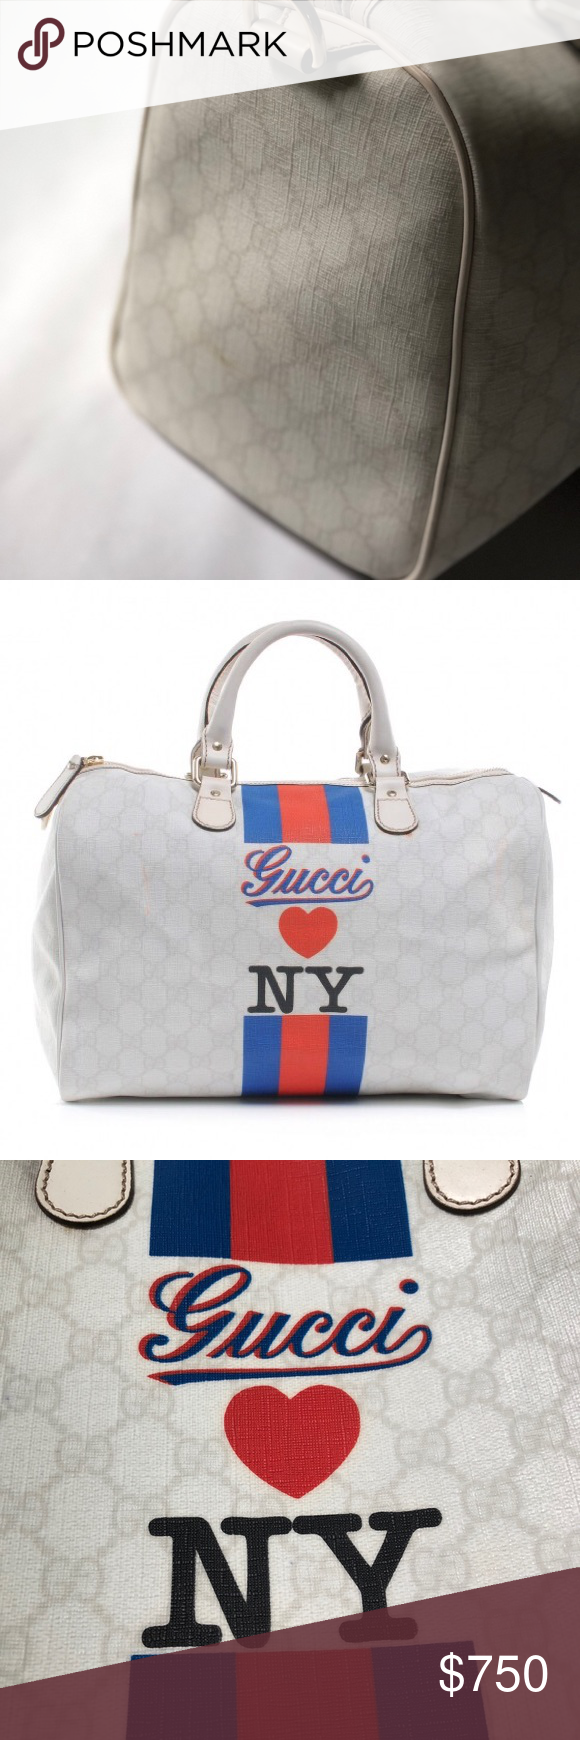 588f80bc2f GUCCI Loves New York Limited Edition Bag 100% Authentic GUCCI Loves New York  bag.